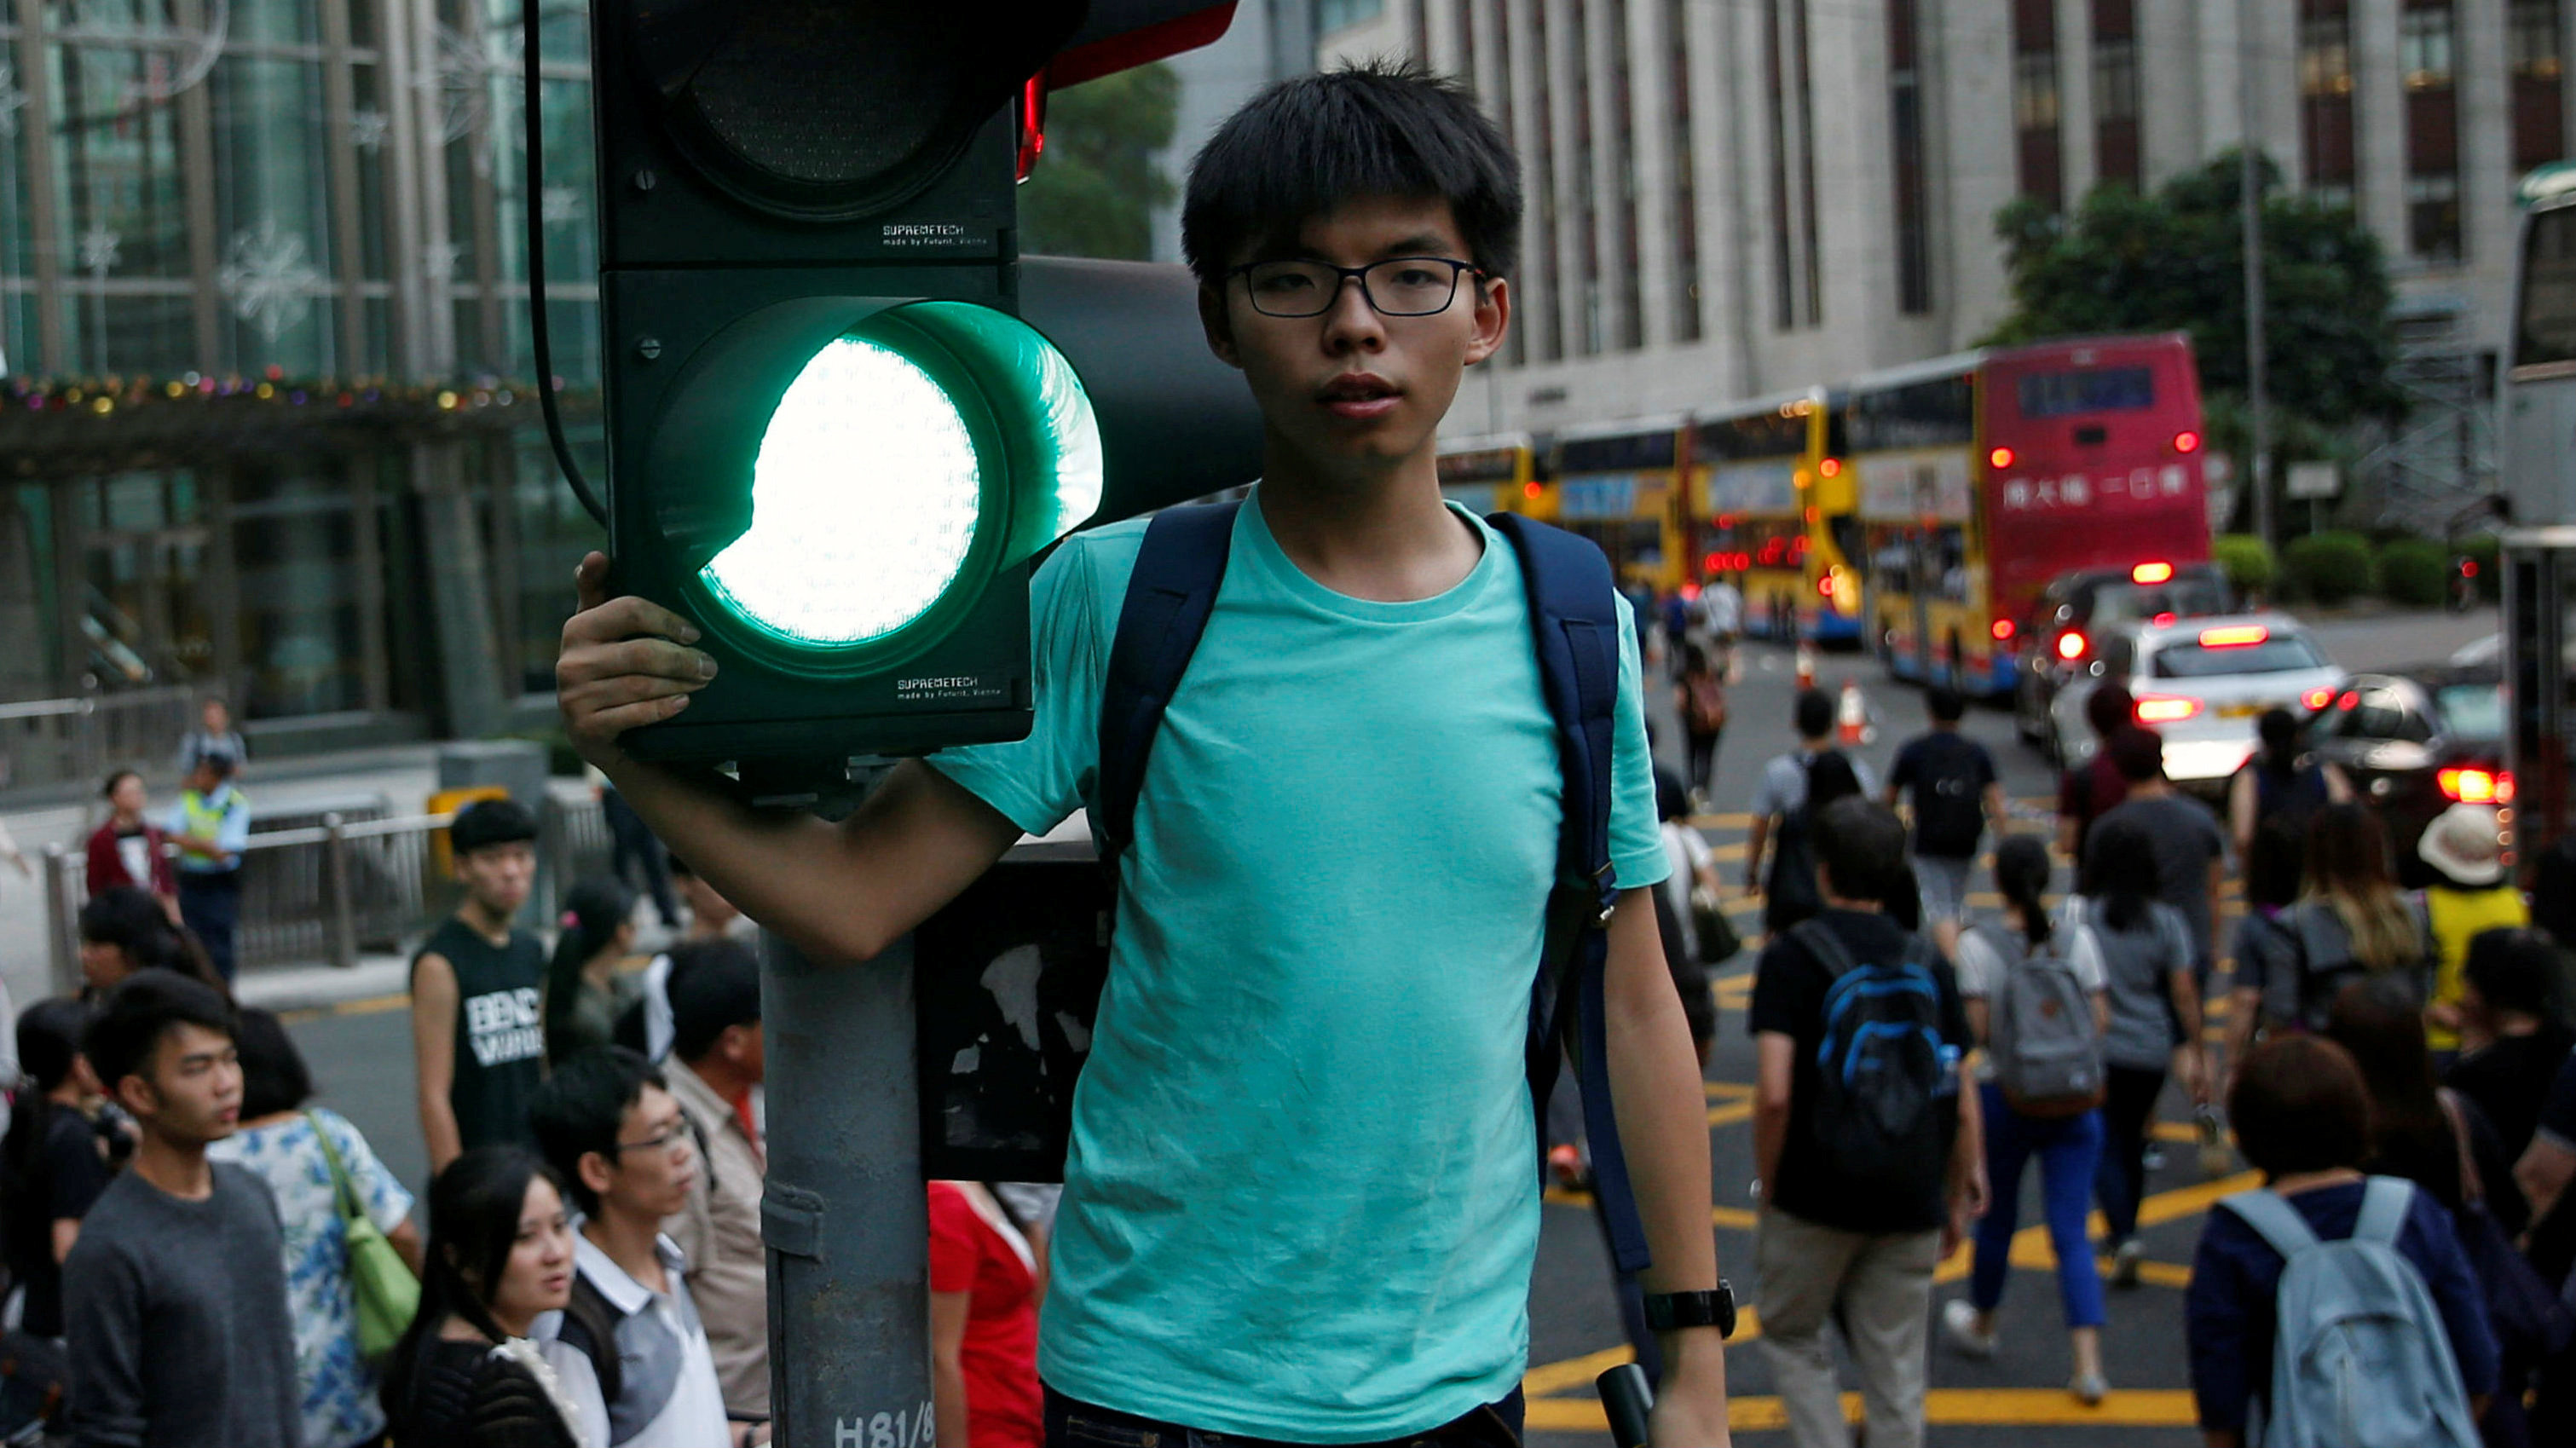 Pro-democracy activist Joshua Wong shouts during a protest in Hong Kong, China November 6, 2016. Picture taken November 6, 2016. REUTERS/Tyrone Siu